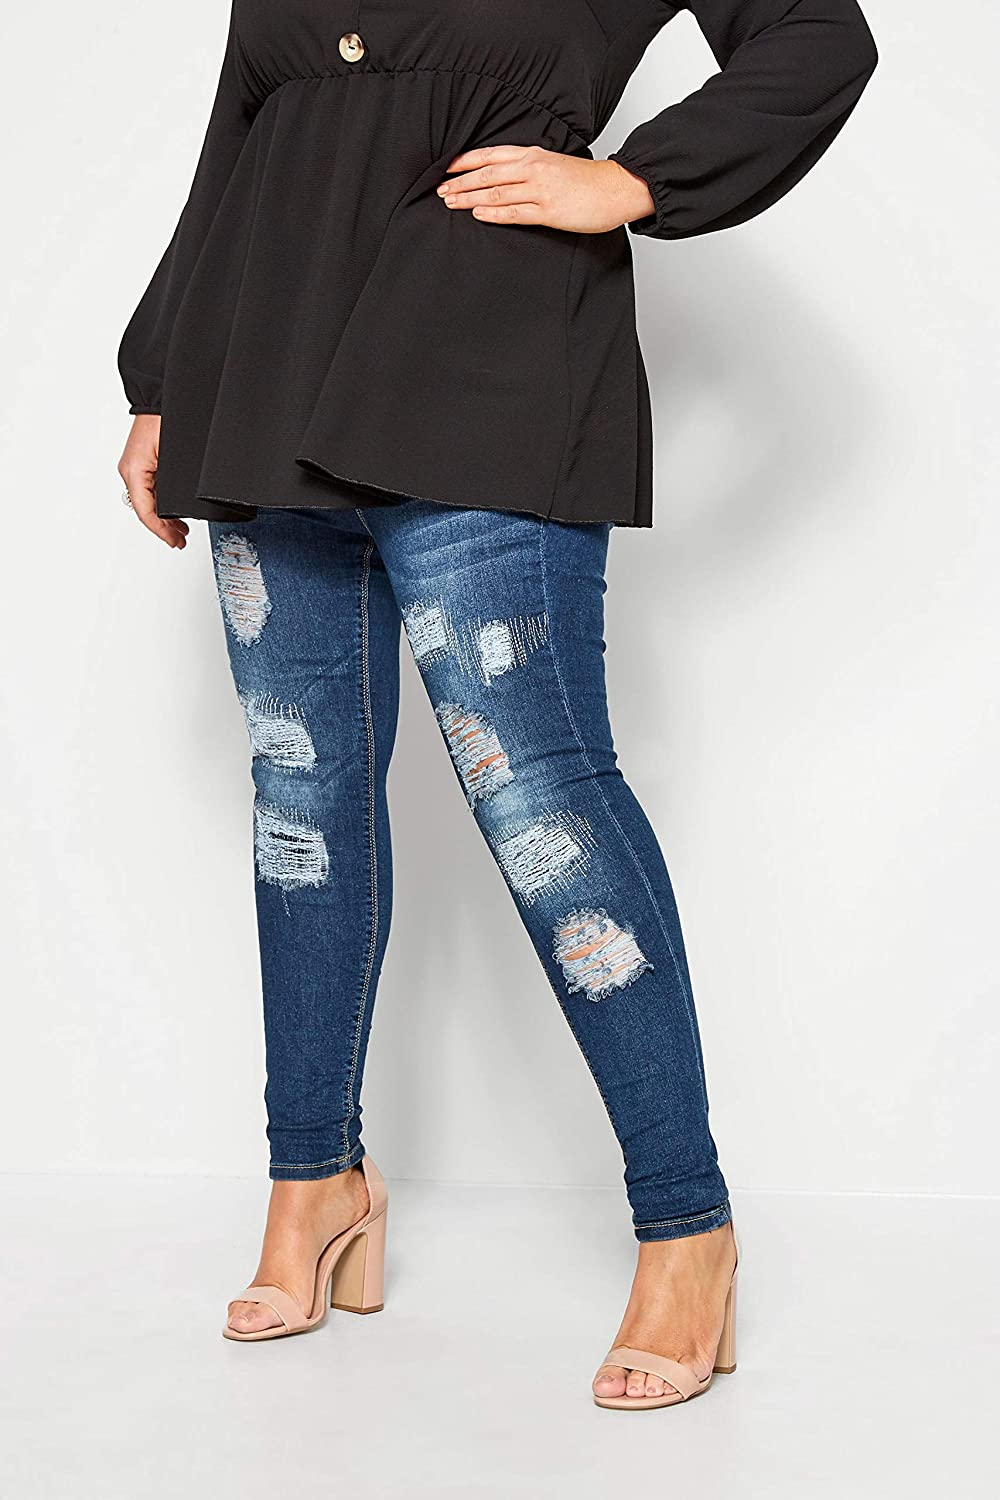 Yours Clothing Plus Size Ladies Indigo Rip and Repair Jenny Jeans